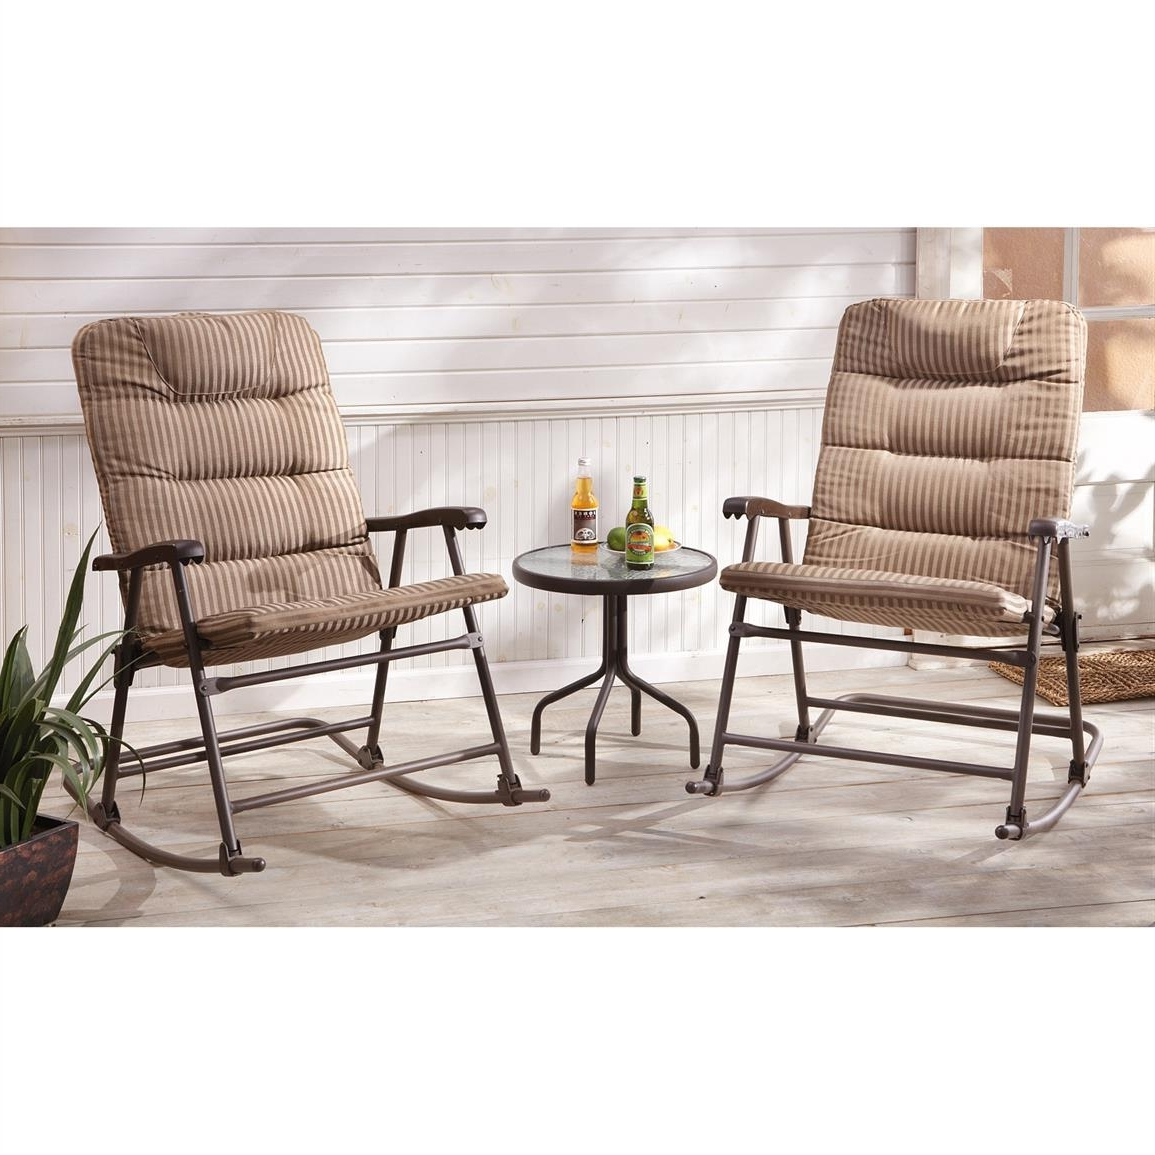 Most Recent Castlecreek Padded Outdoor Rocking Chair Set Piece Oversized Chairs In Padded Patio Rocking Chairs (View 3 of 15)